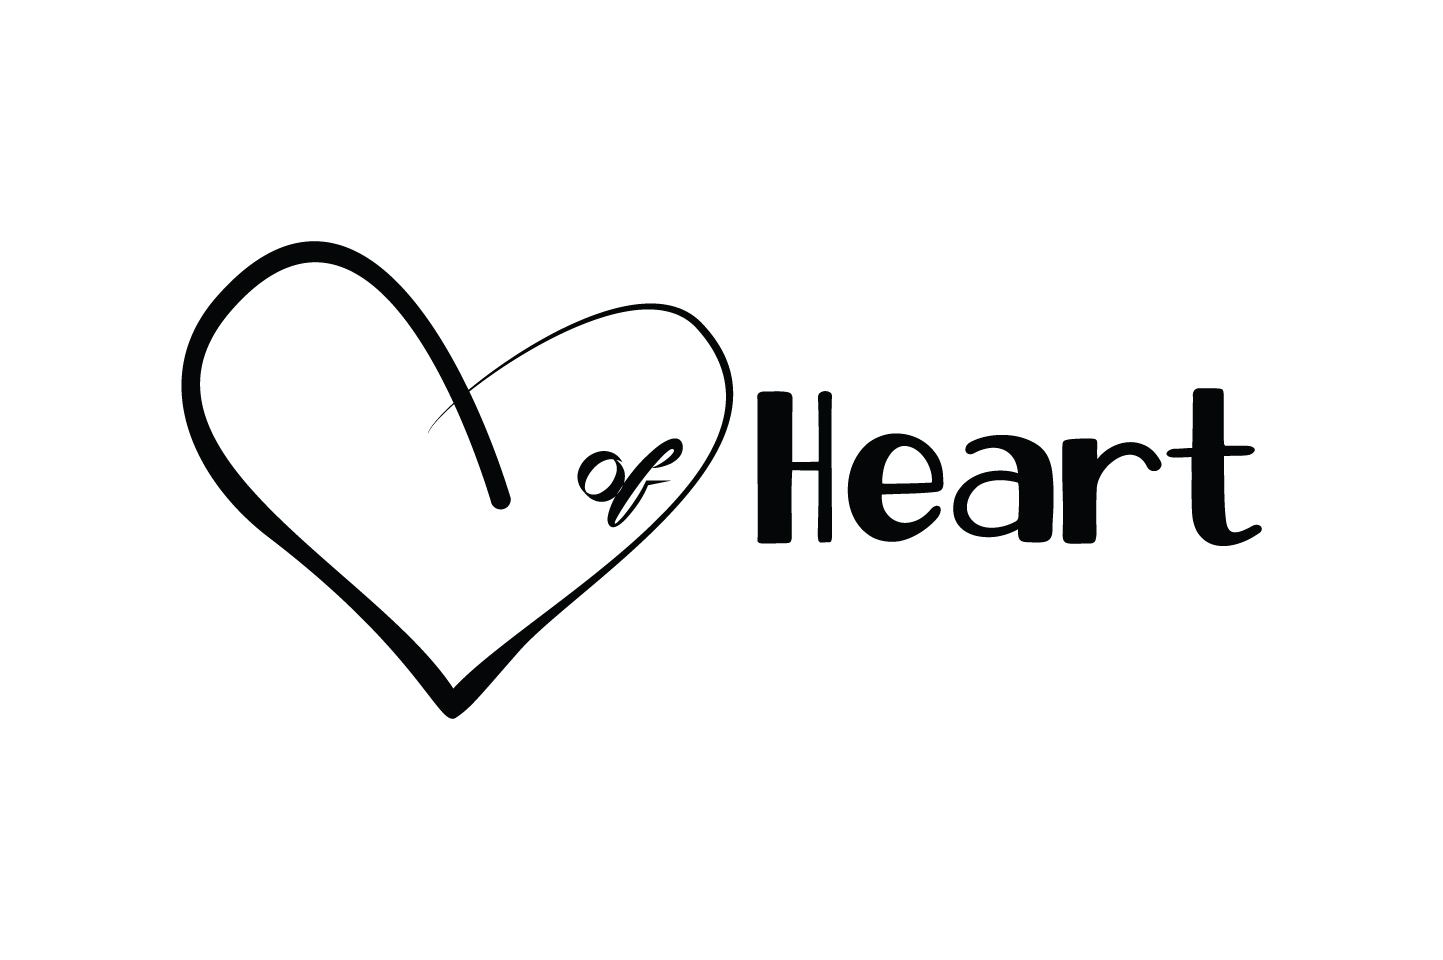 Heart Of Heart Quote Svg Cut Graphic By Yuhana Purwanti